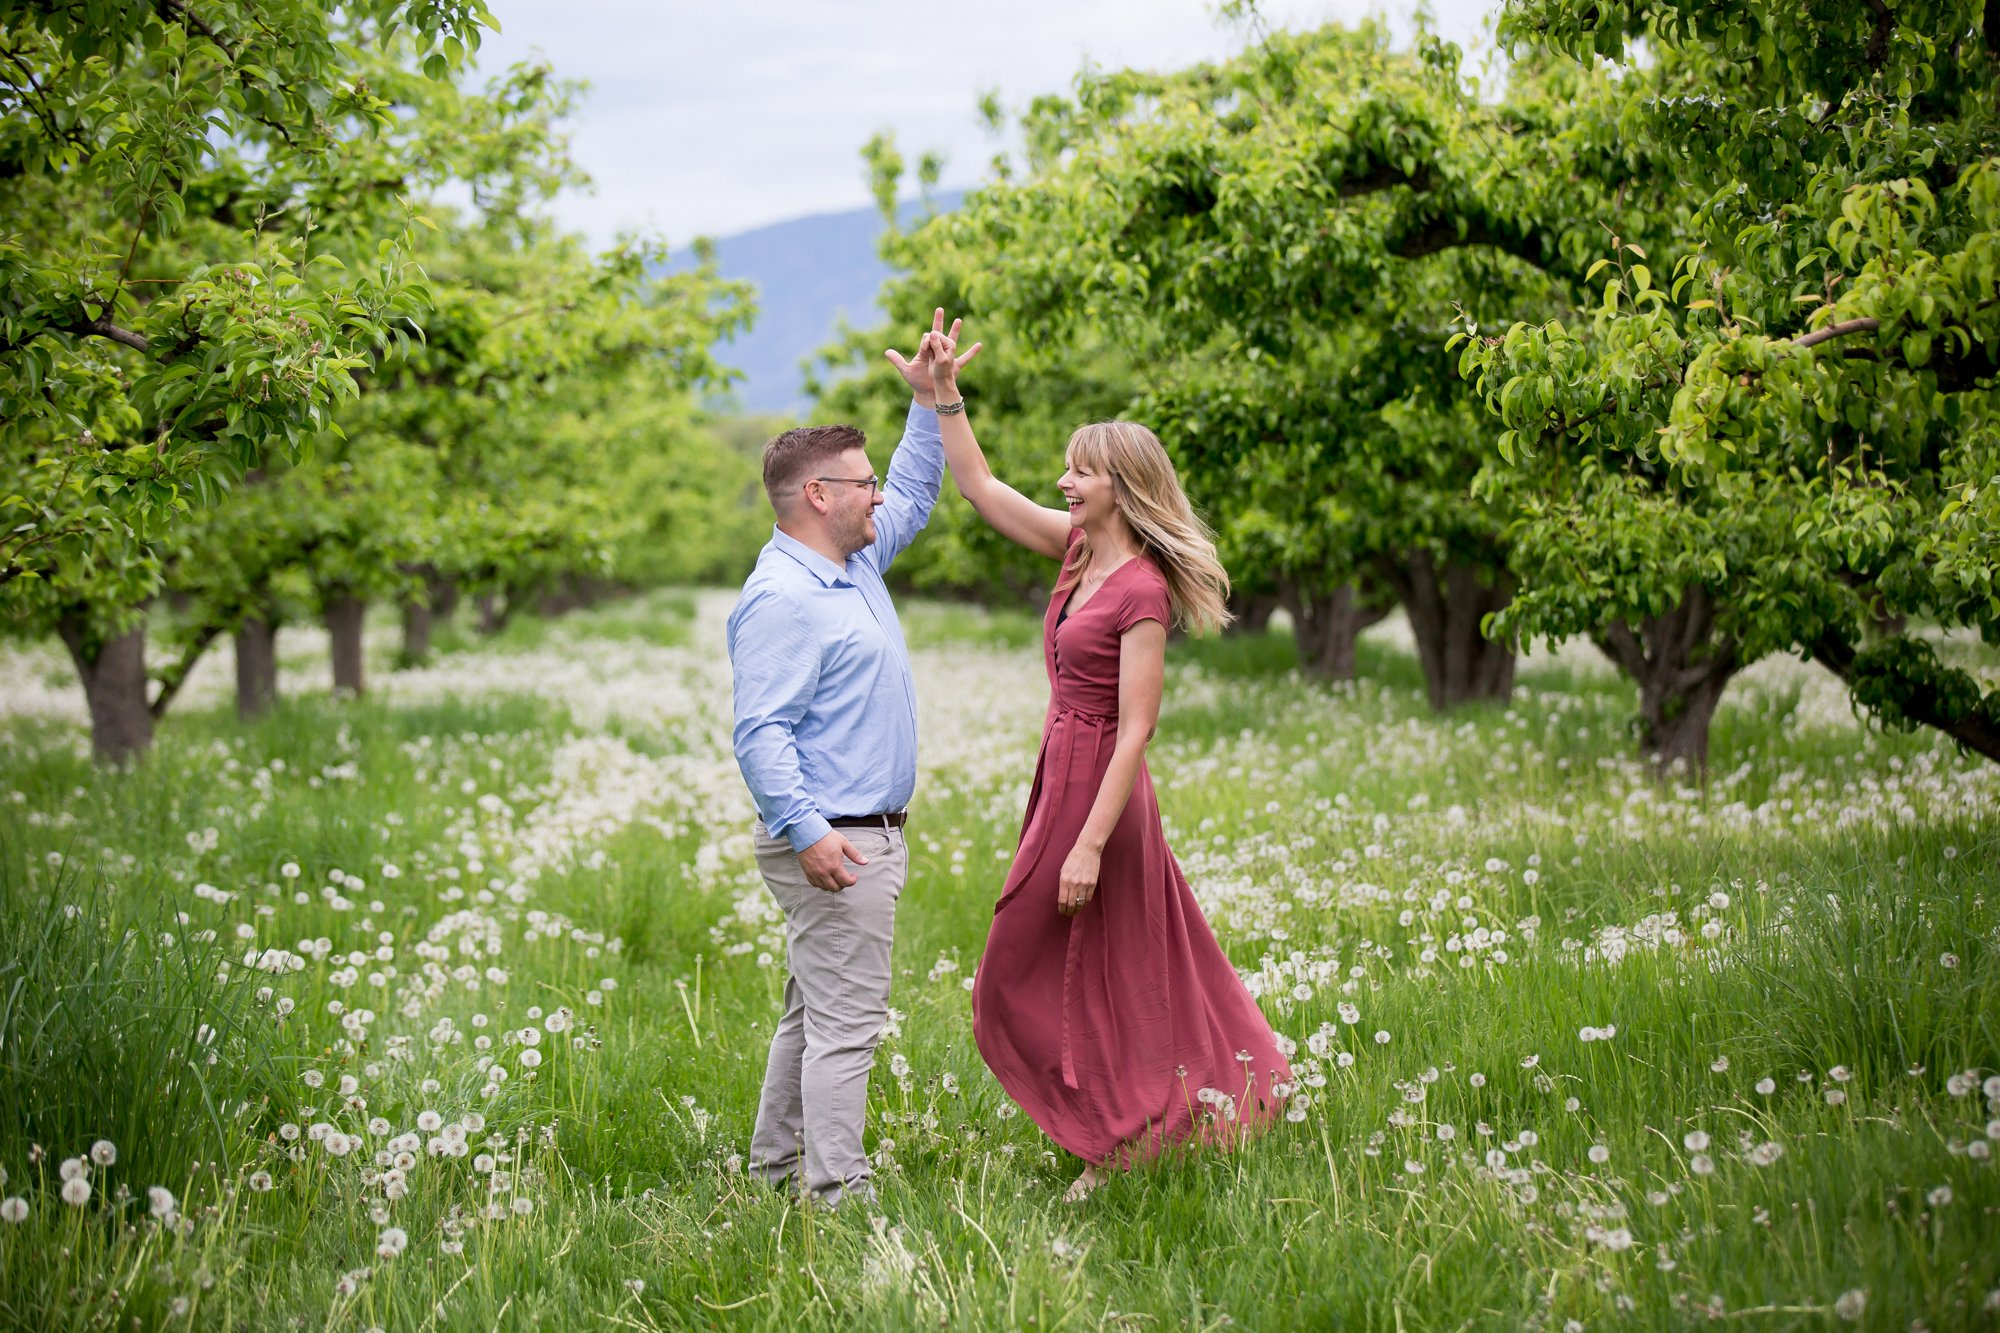 A couple dancing in an orchard